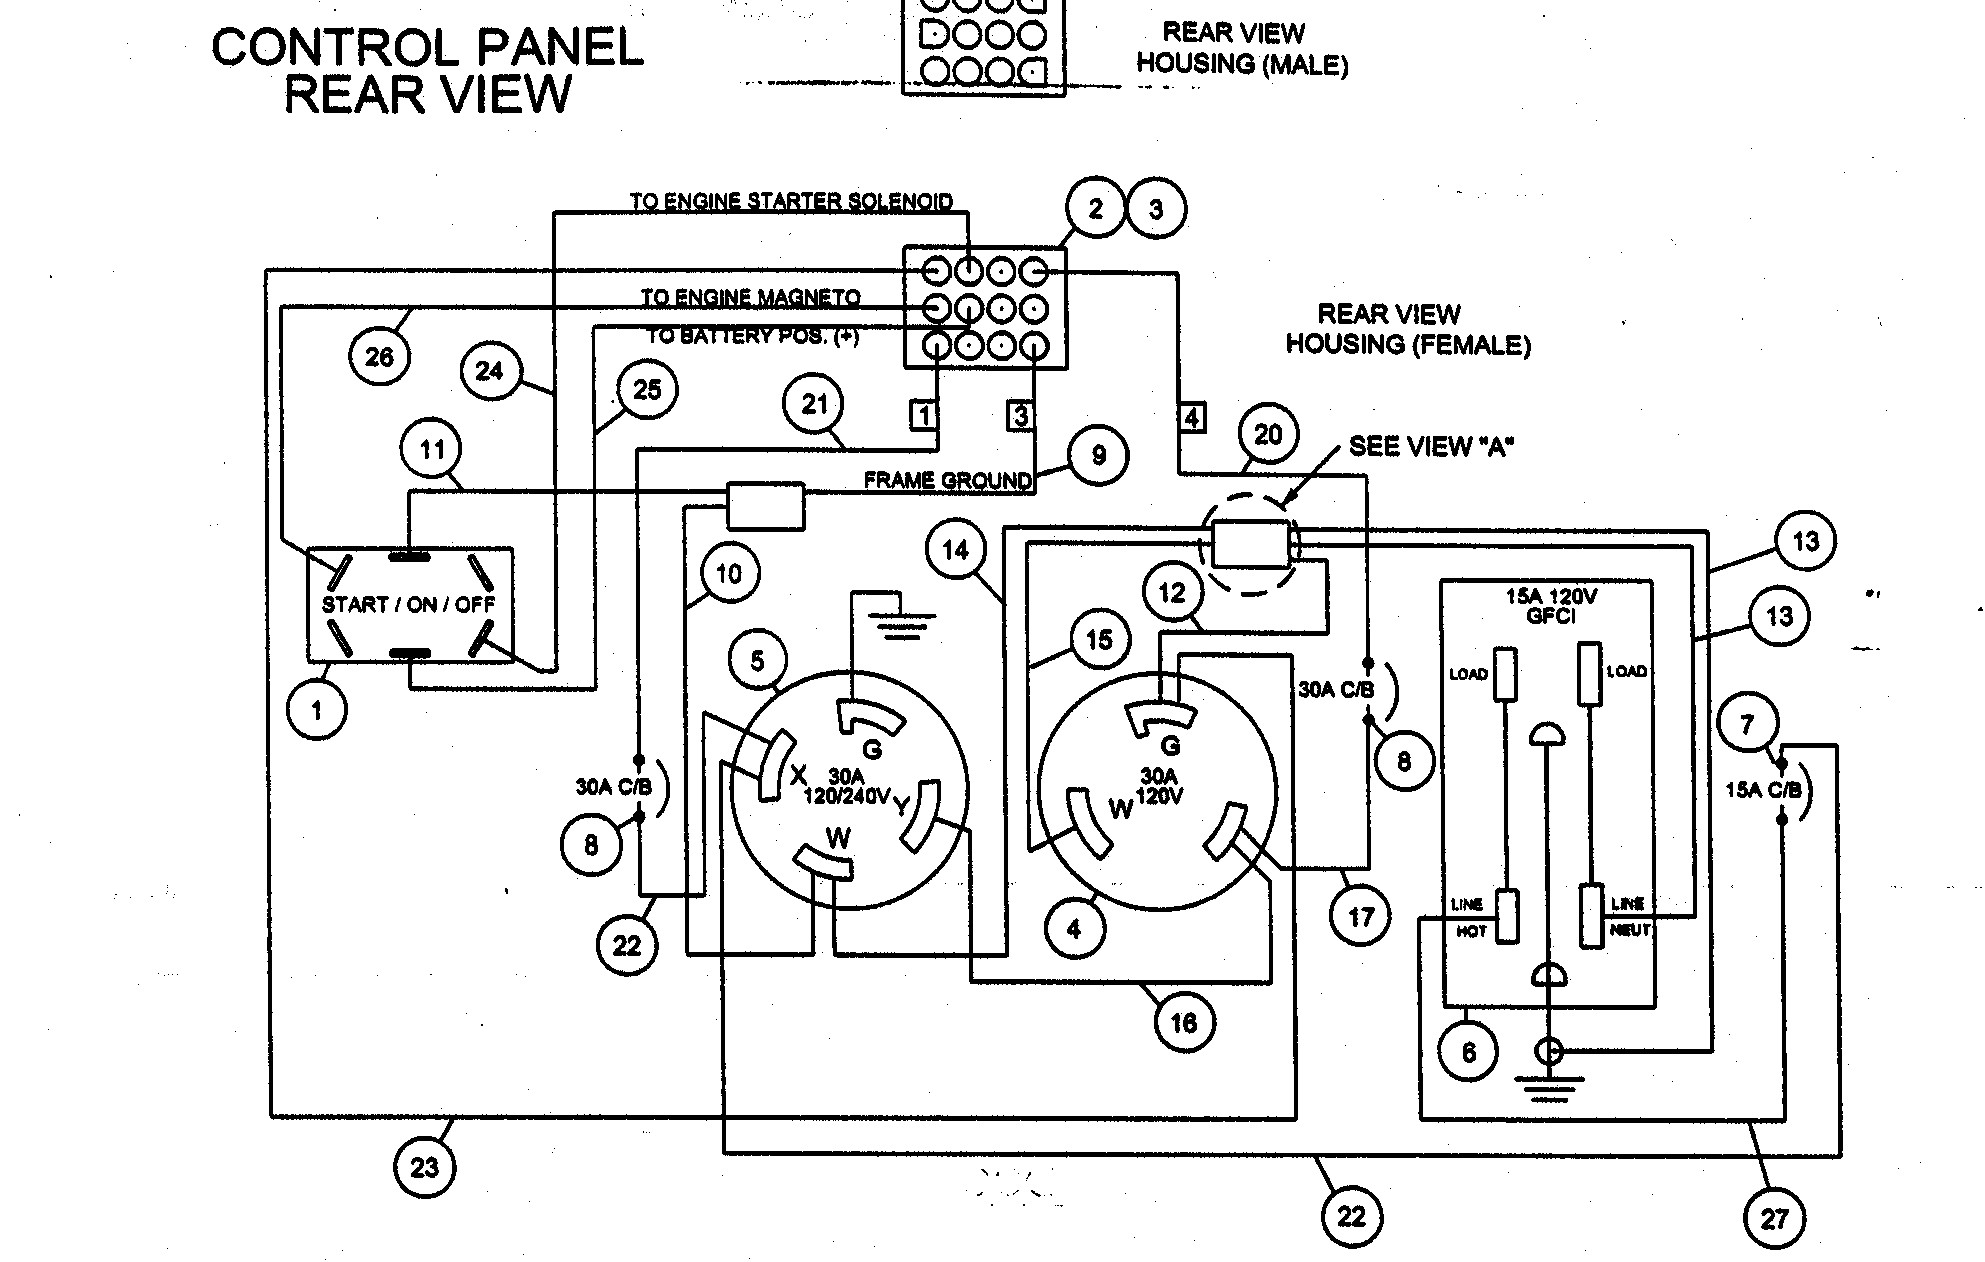 craftsman generator wiring diagram example electrical wiring diagram u2022 rh 162 212 157 63 Craftsman Air Compressor Wiring Diagram Craftsman GT 18 Wiring-Diagram